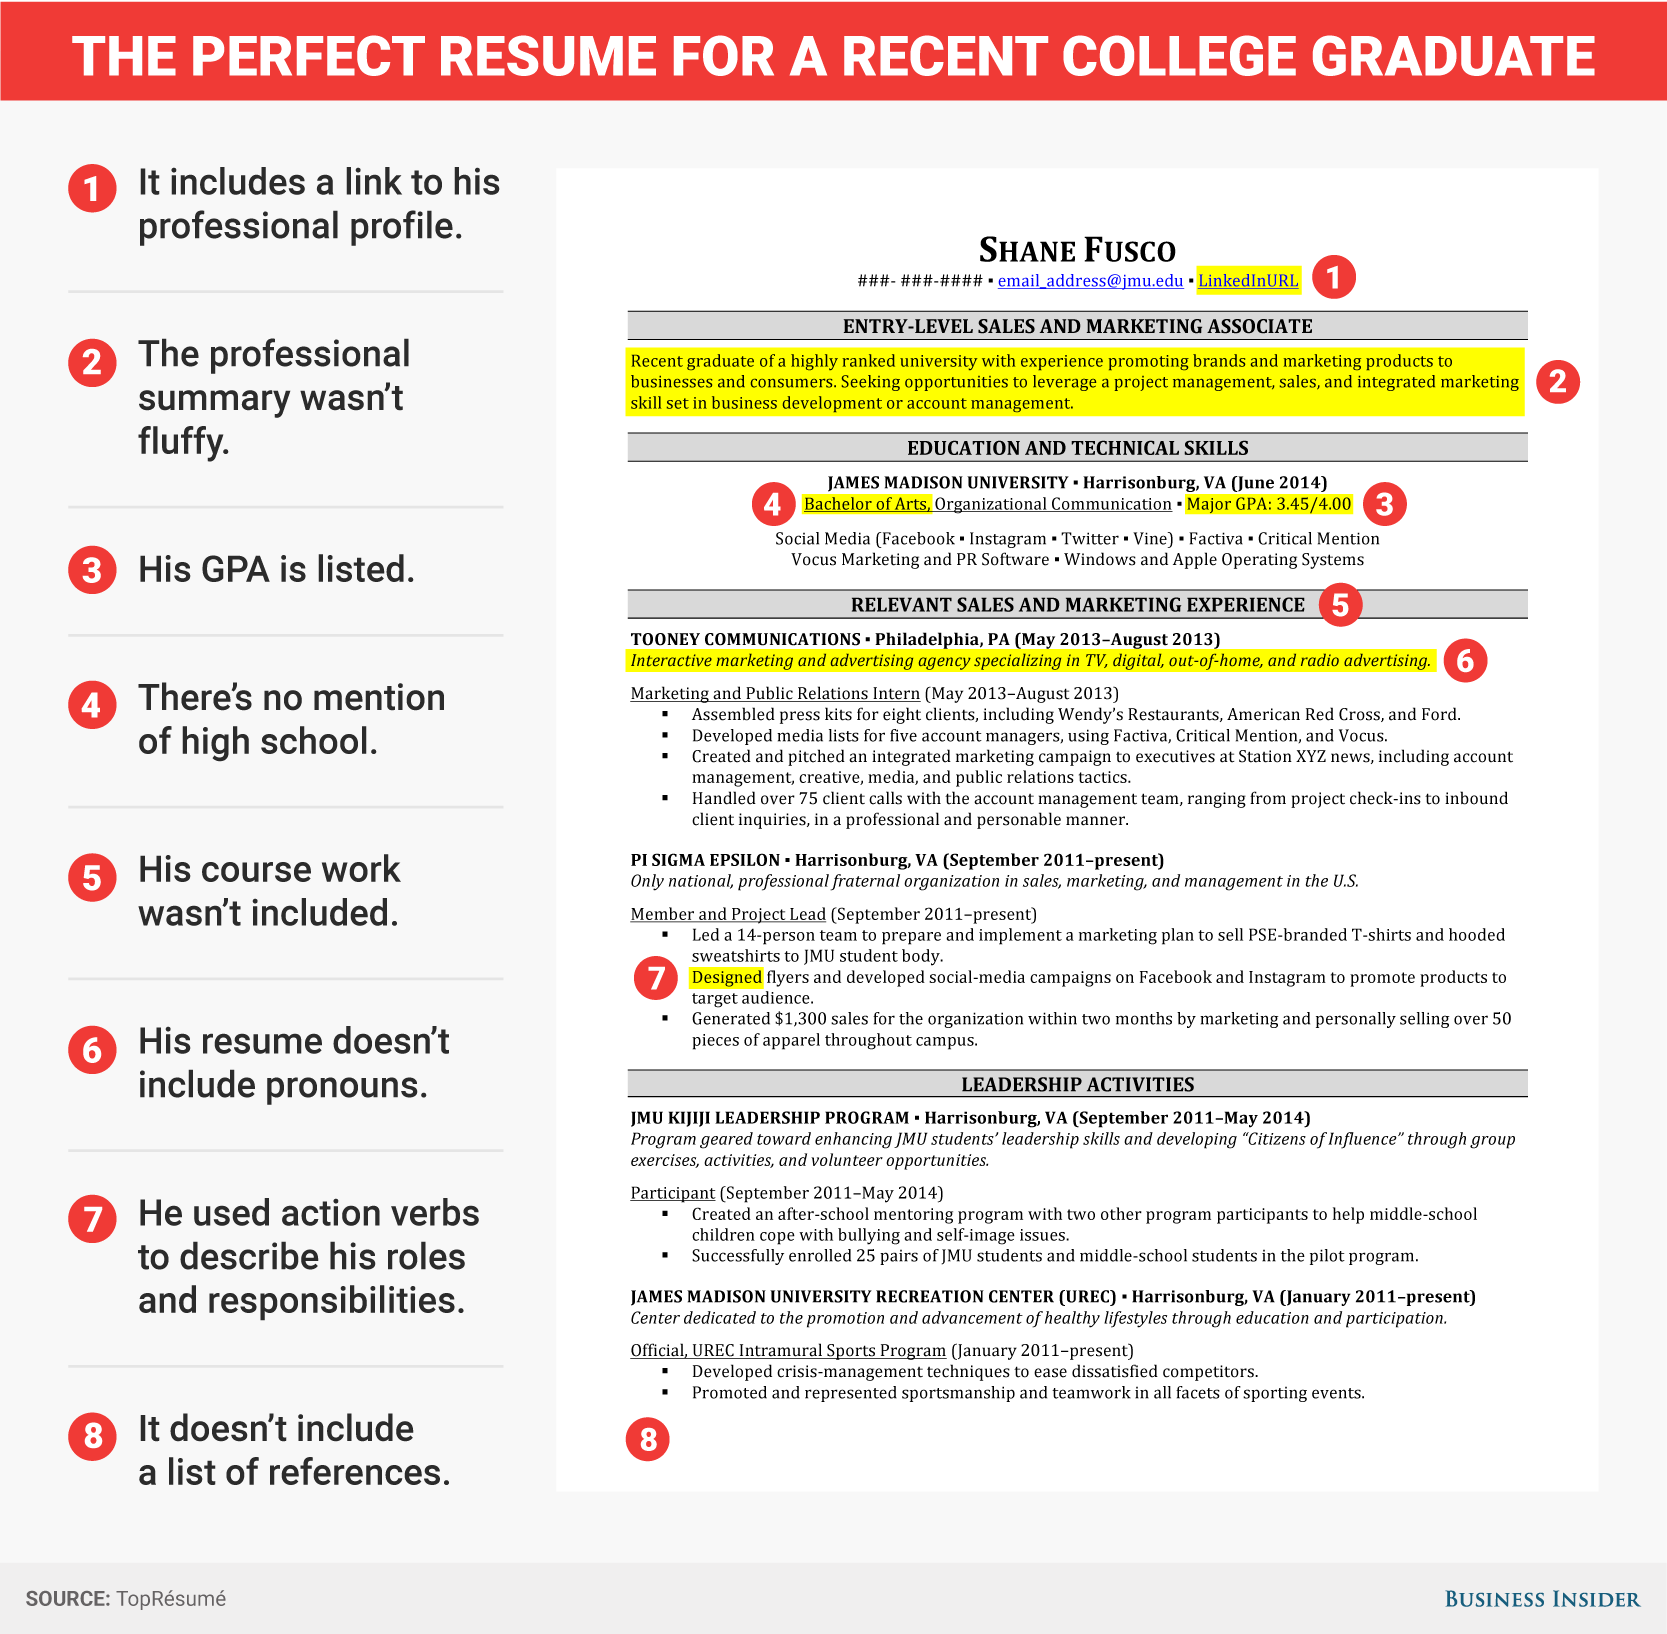 How To Write Resume For New Graduate Writing A Rsum Capital University Excellent Resume For Recent College Grad Business Insider